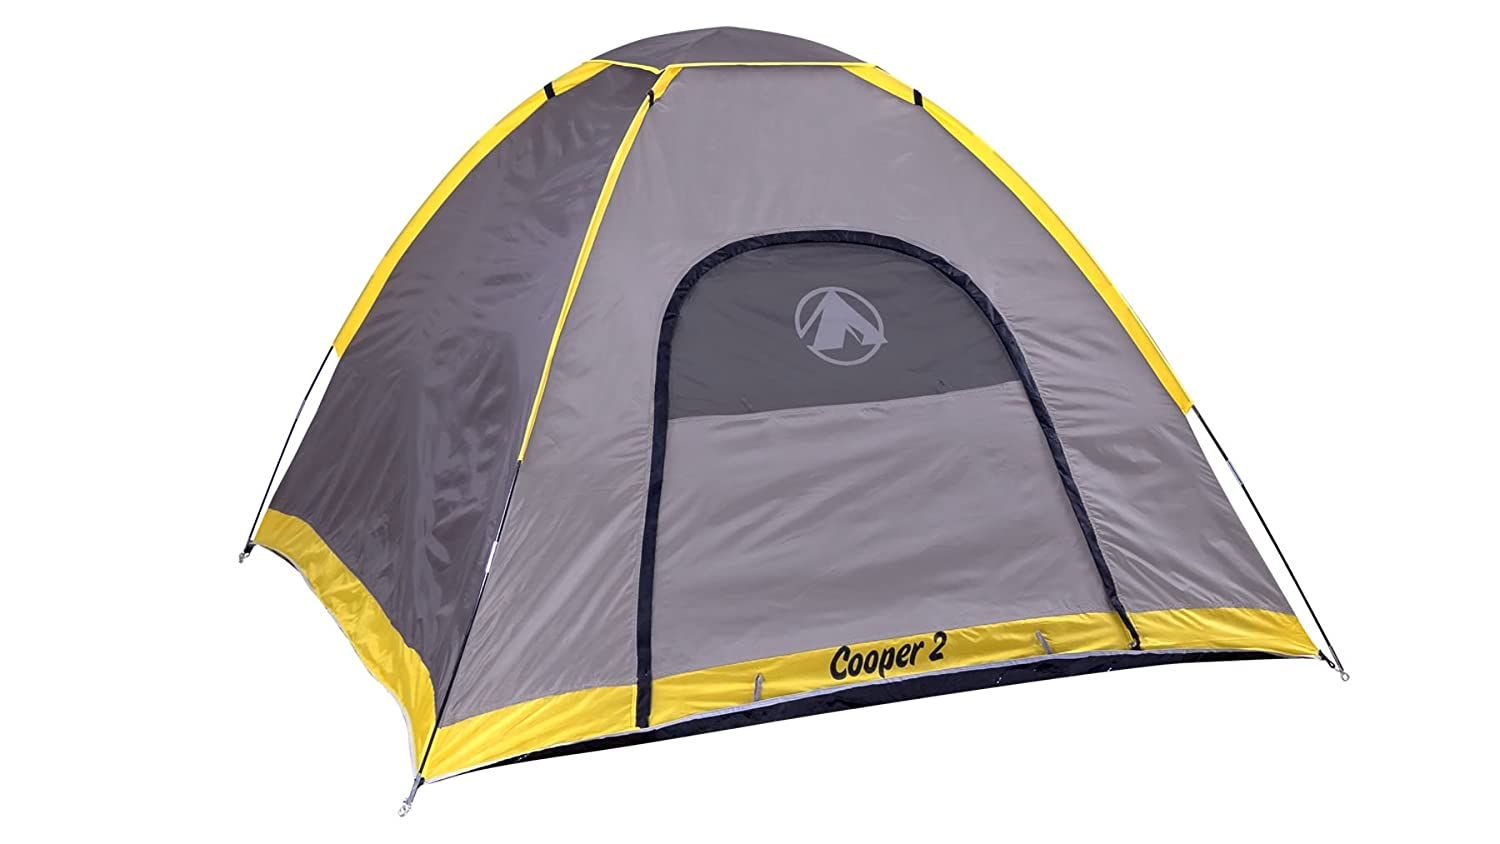 Amazon.com  Giga Tent-Cooper 2  Backpacking Tents  Sports u0026 Outdoors  sc 1 st  Amazon.com & Amazon.com : Giga Tent-Cooper 2 : Backpacking Tents : Sports ...